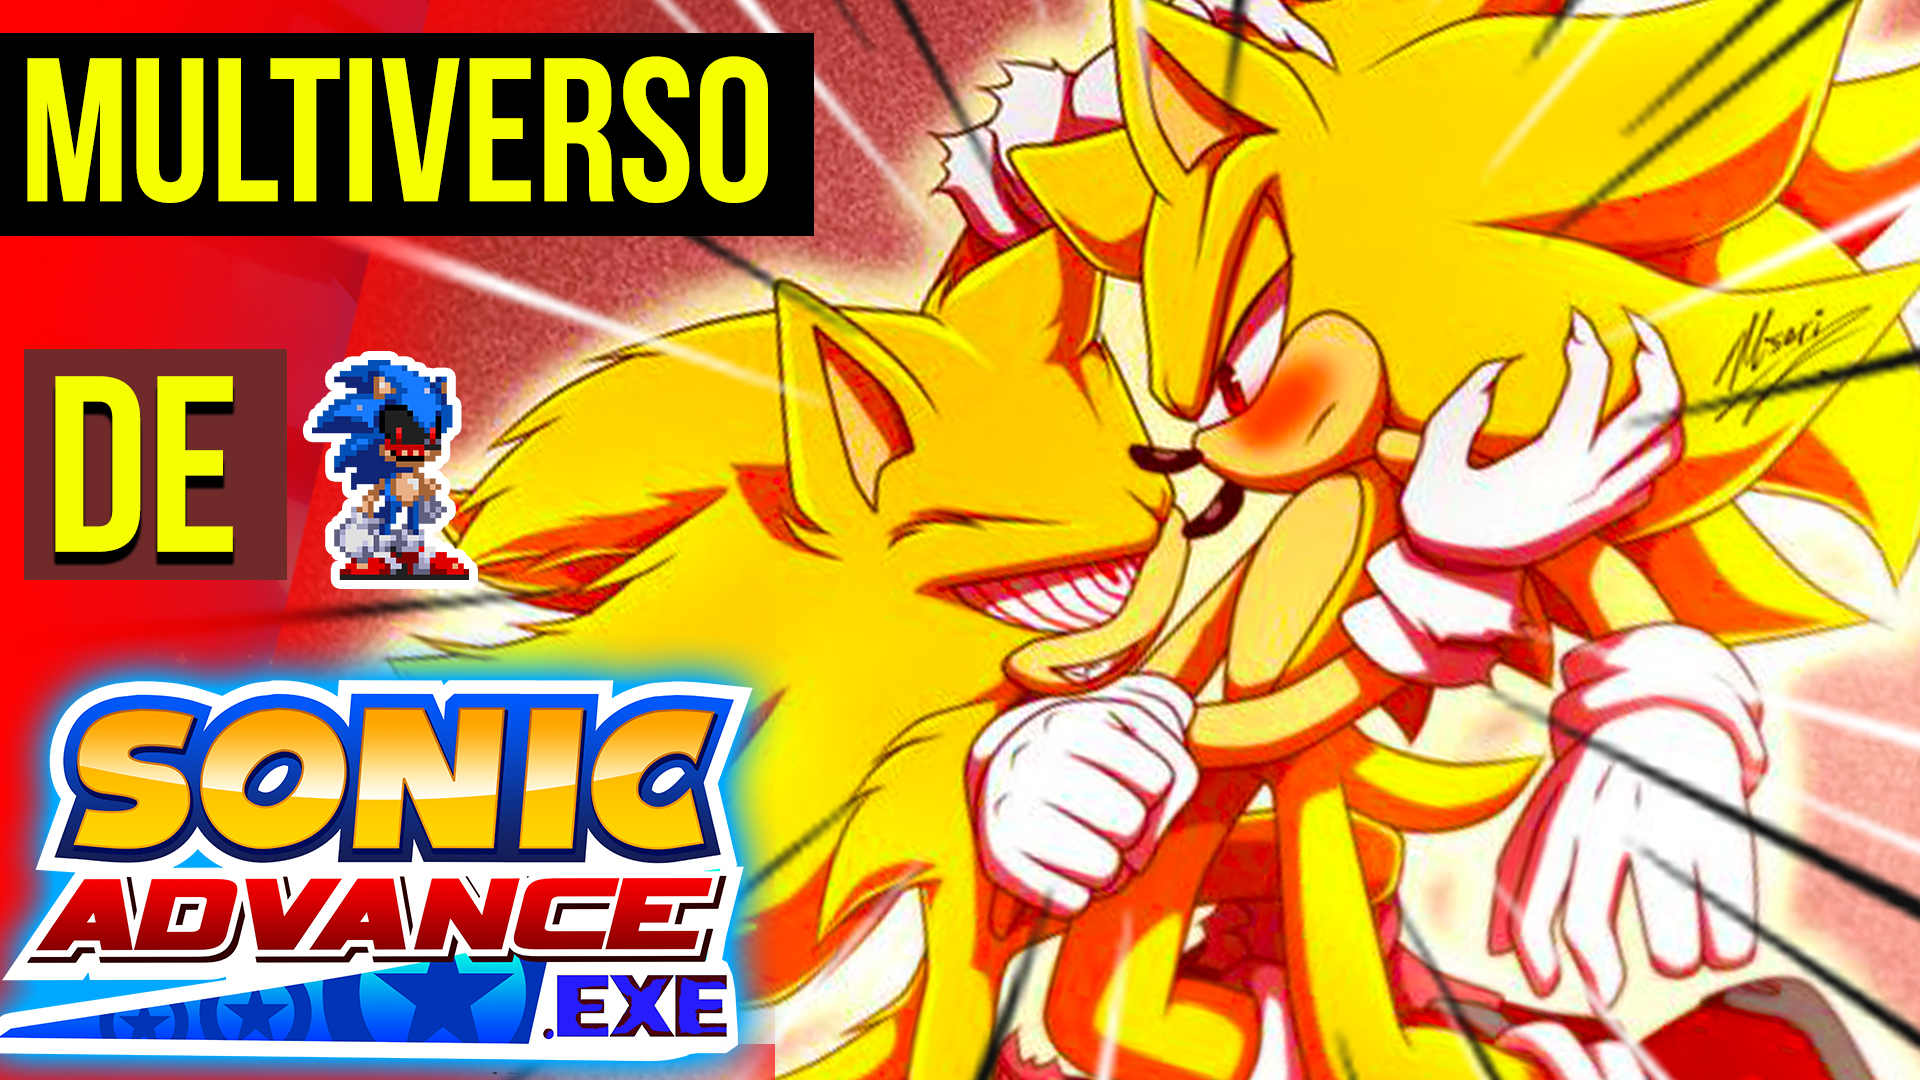 sonic exe advance